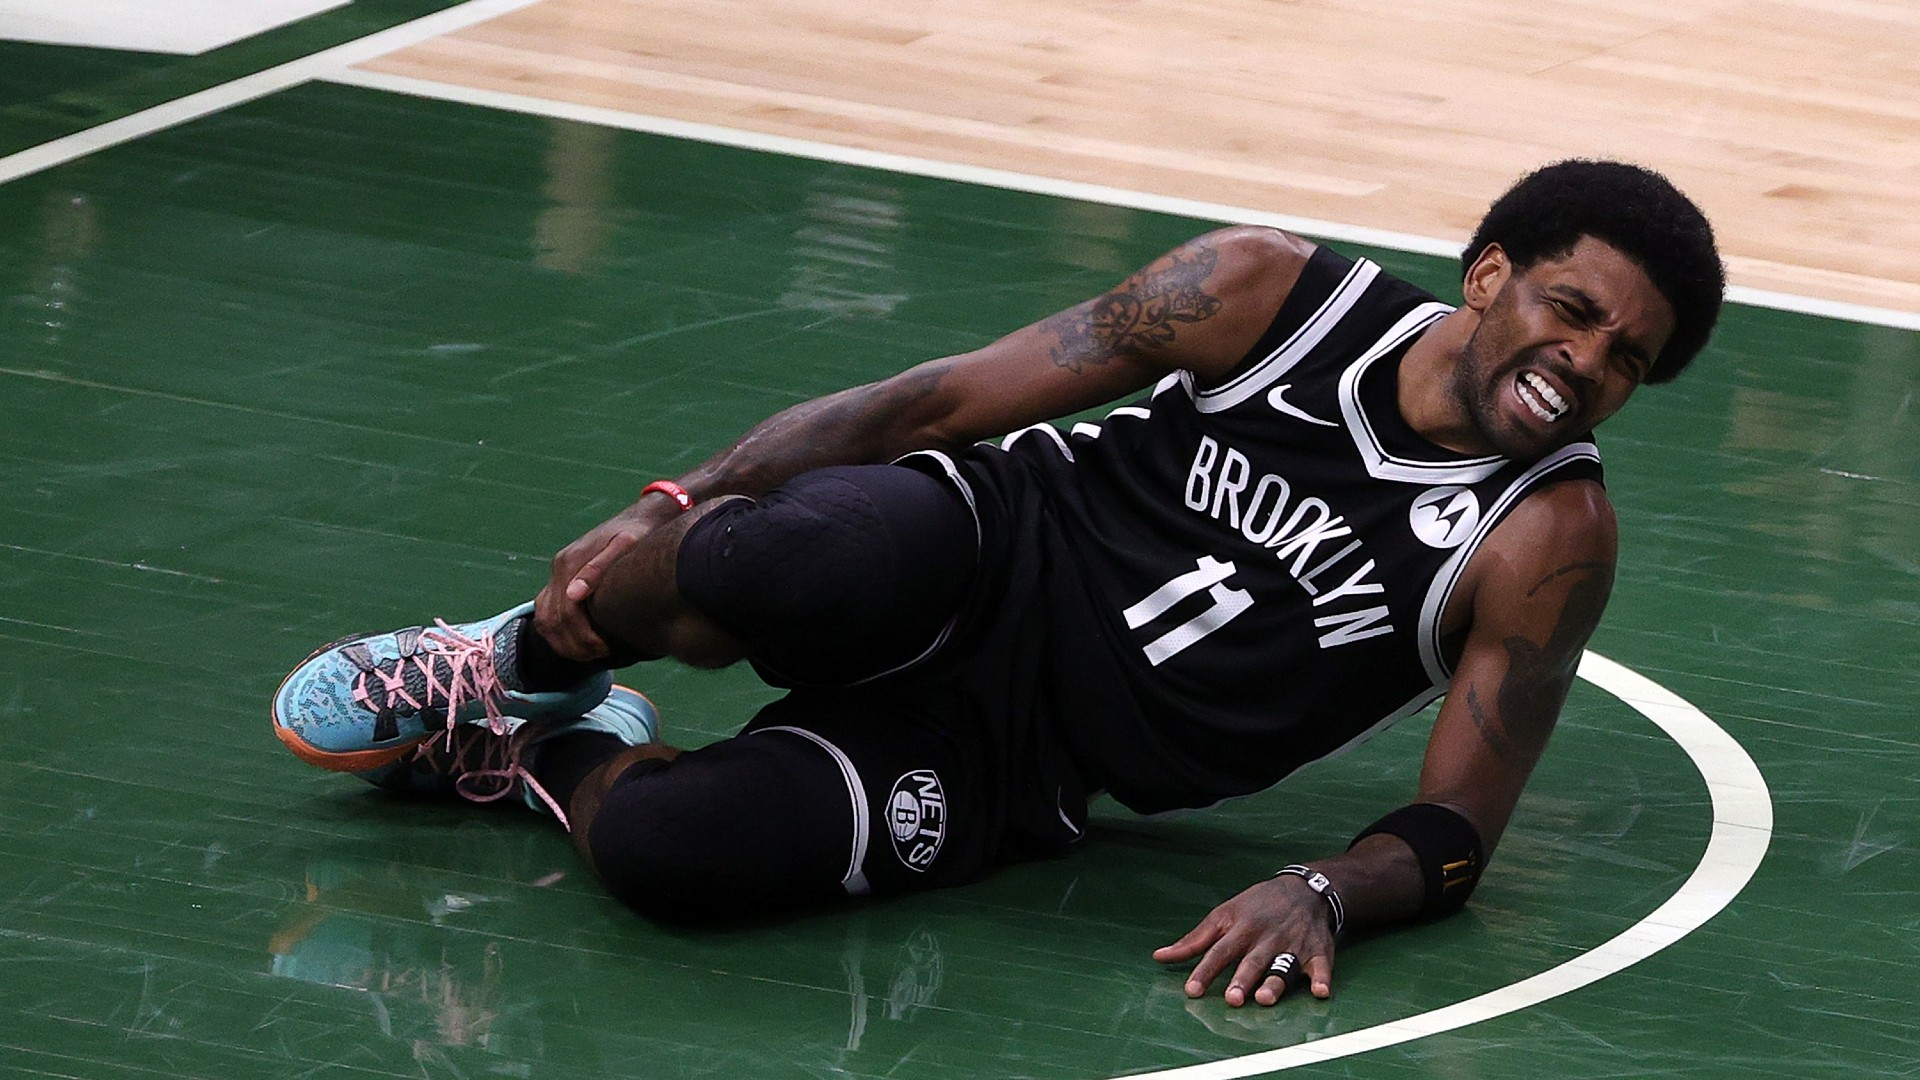 Kyrie Irving injury update: Nets guard ruled out of Game 5 vs. Bucks with sprained ankle